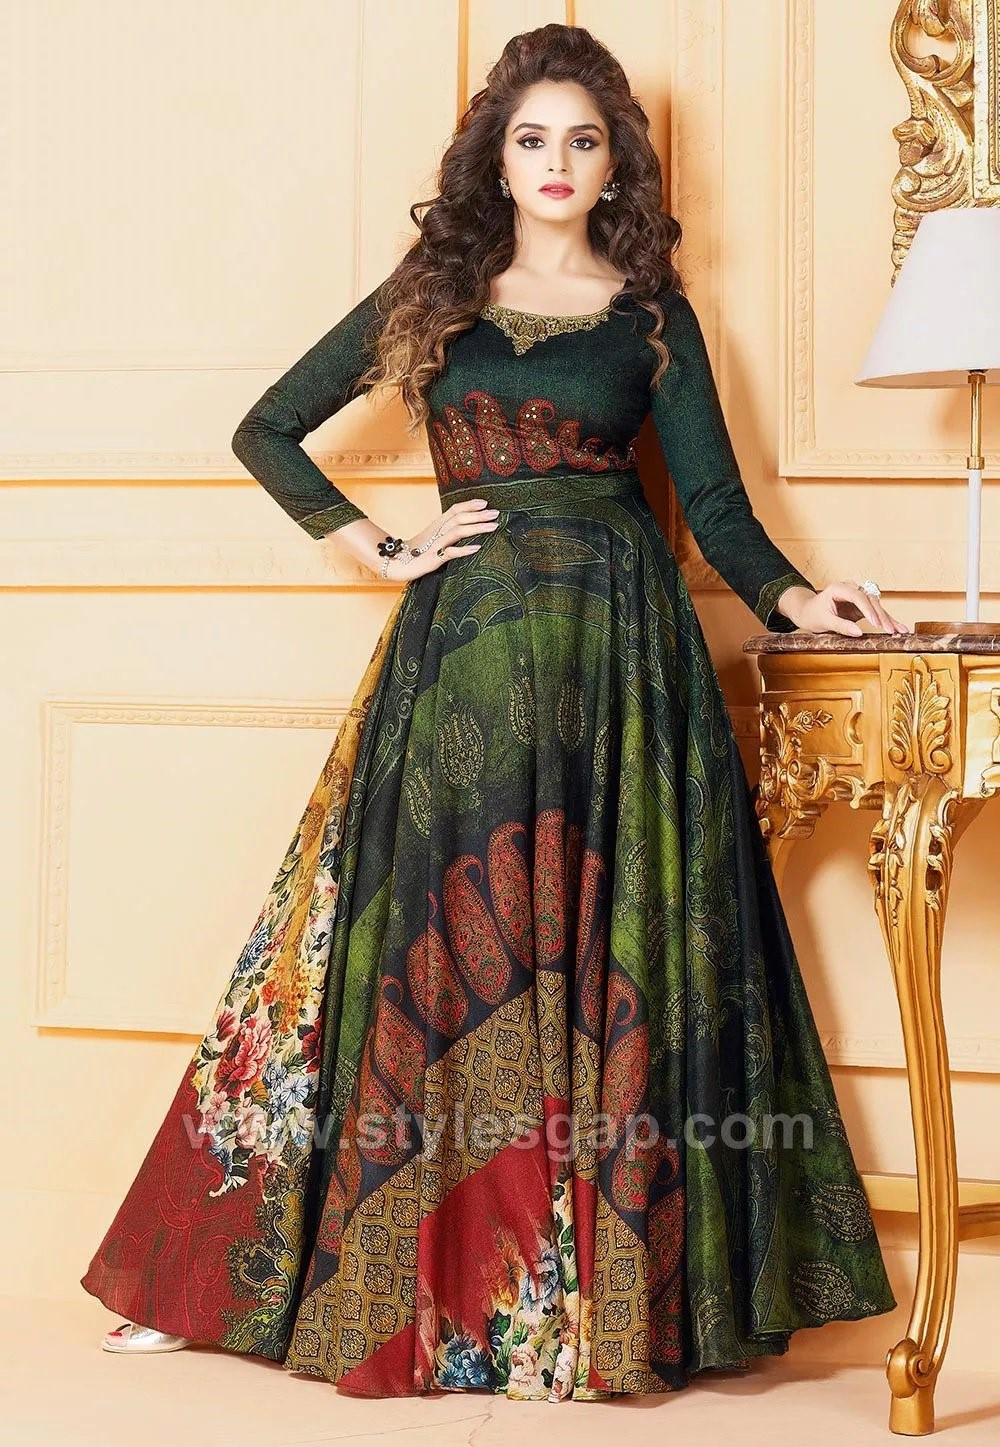 Umbrella Cut Dress Designs Amp Frocks Styles 2018 19 Collection